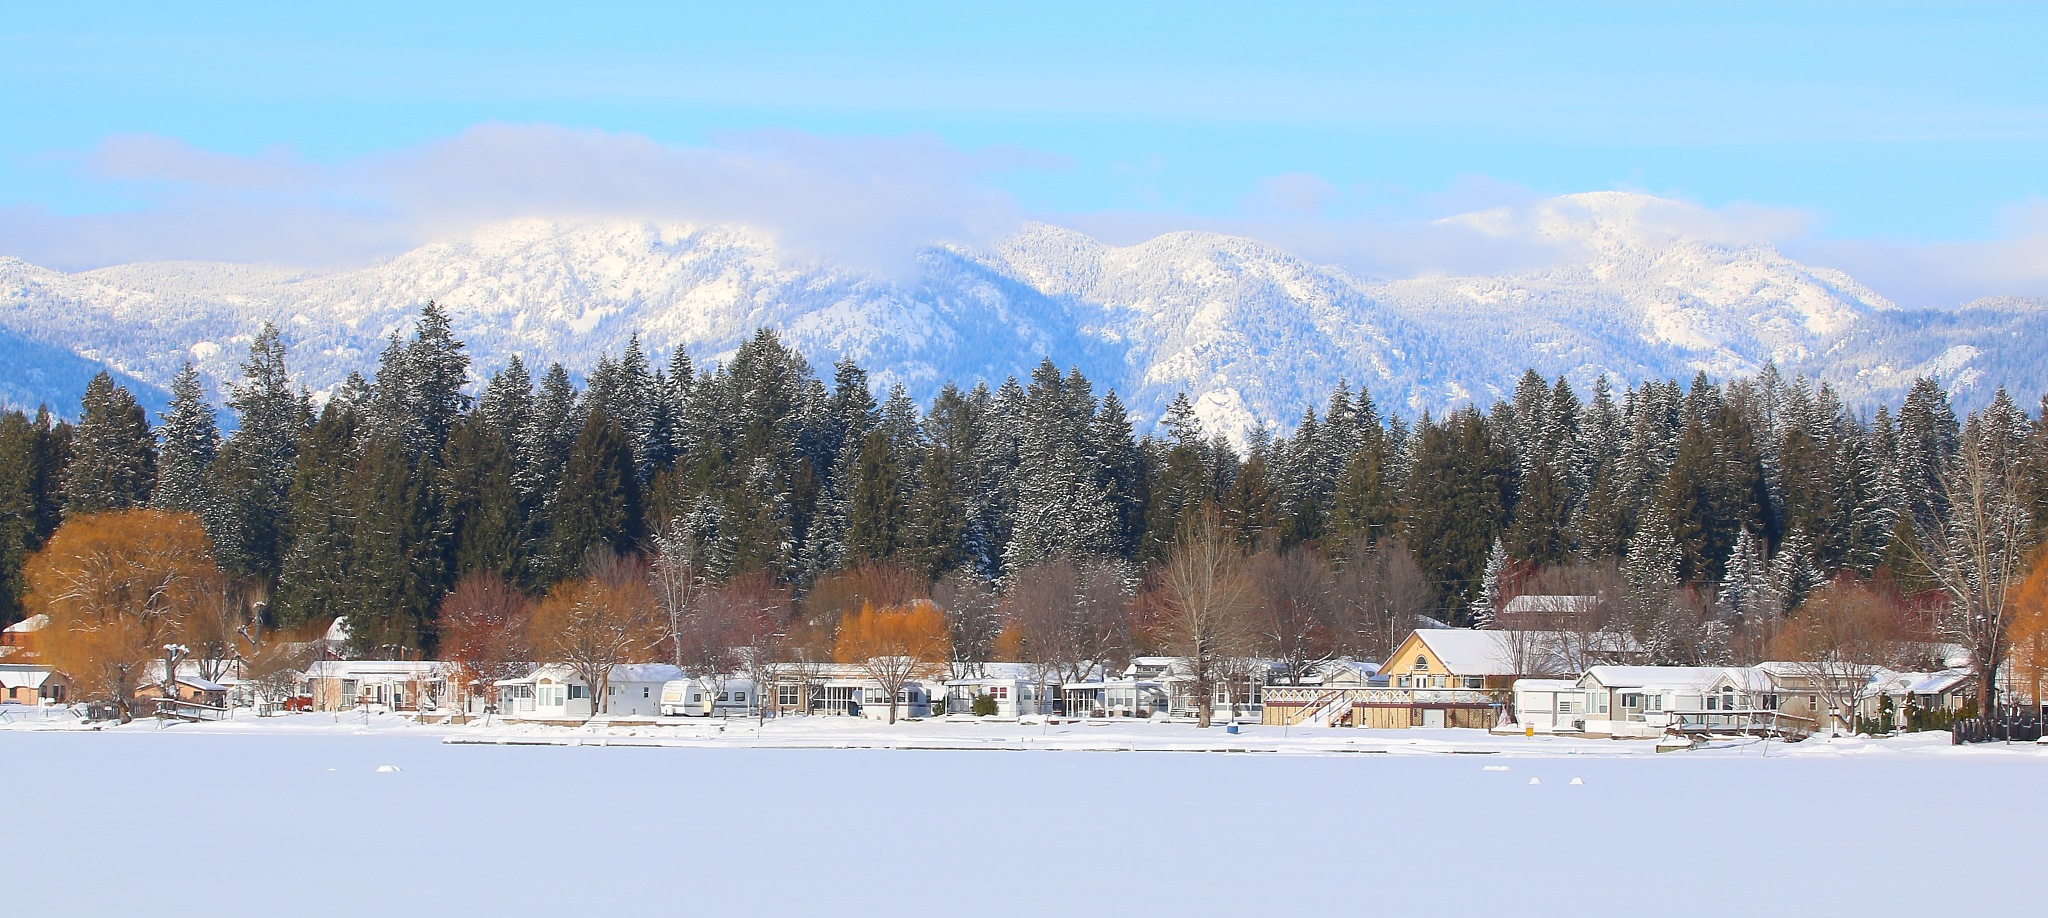 Pano One Fine Winter Day by Laurie Puglia